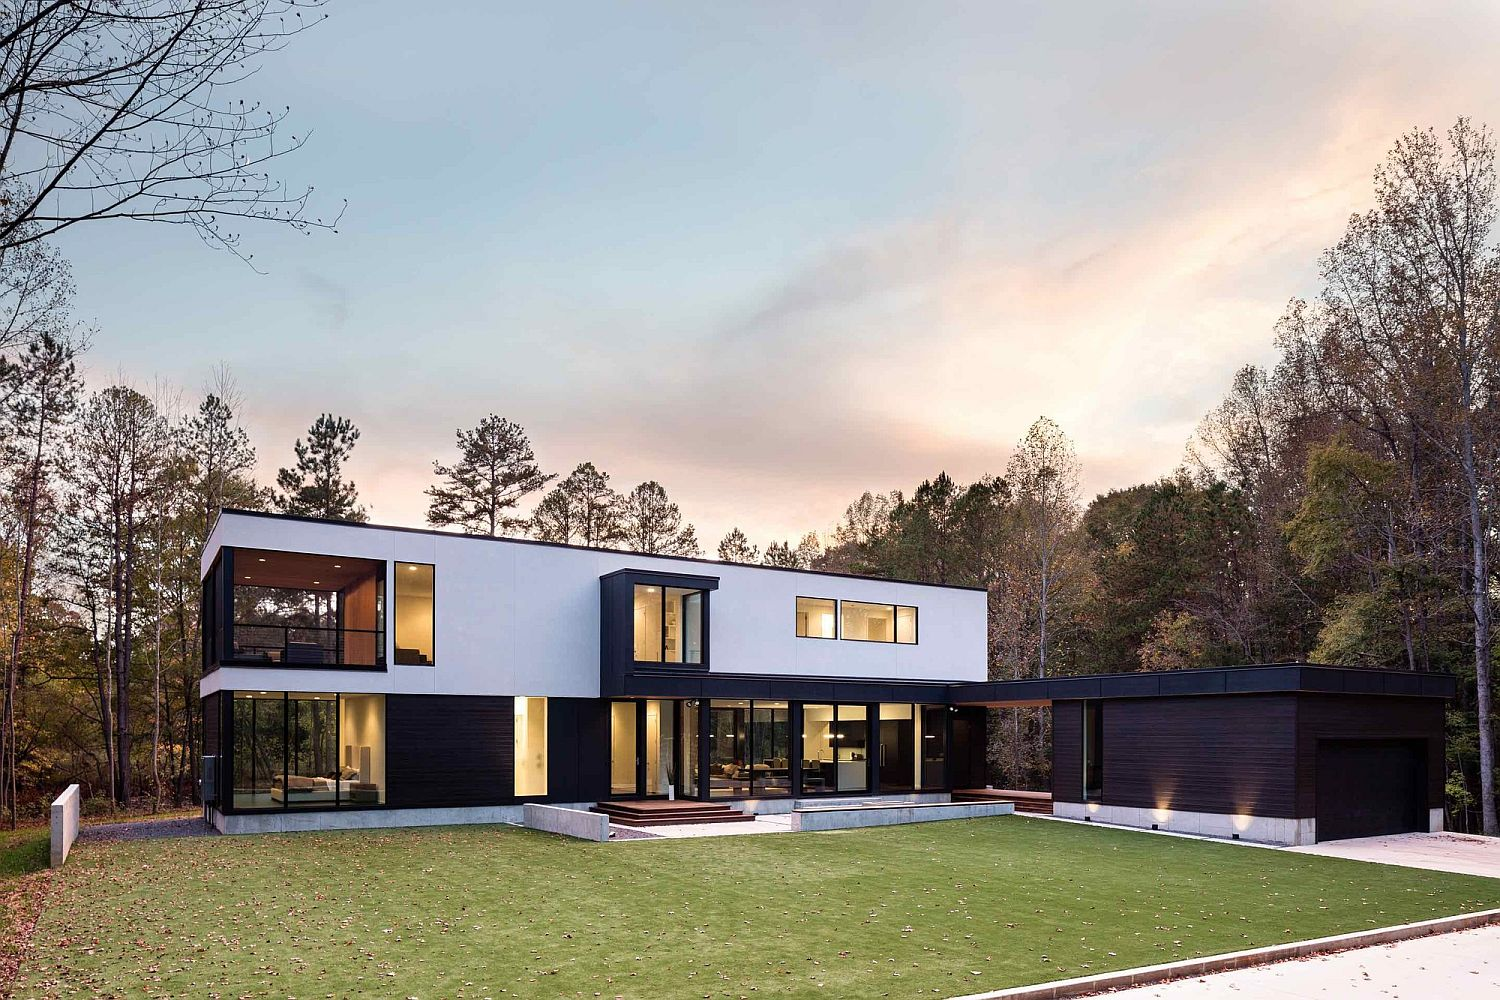 polished charlotte home overlooks lush greenery and a. Black Bedroom Furniture Sets. Home Design Ideas